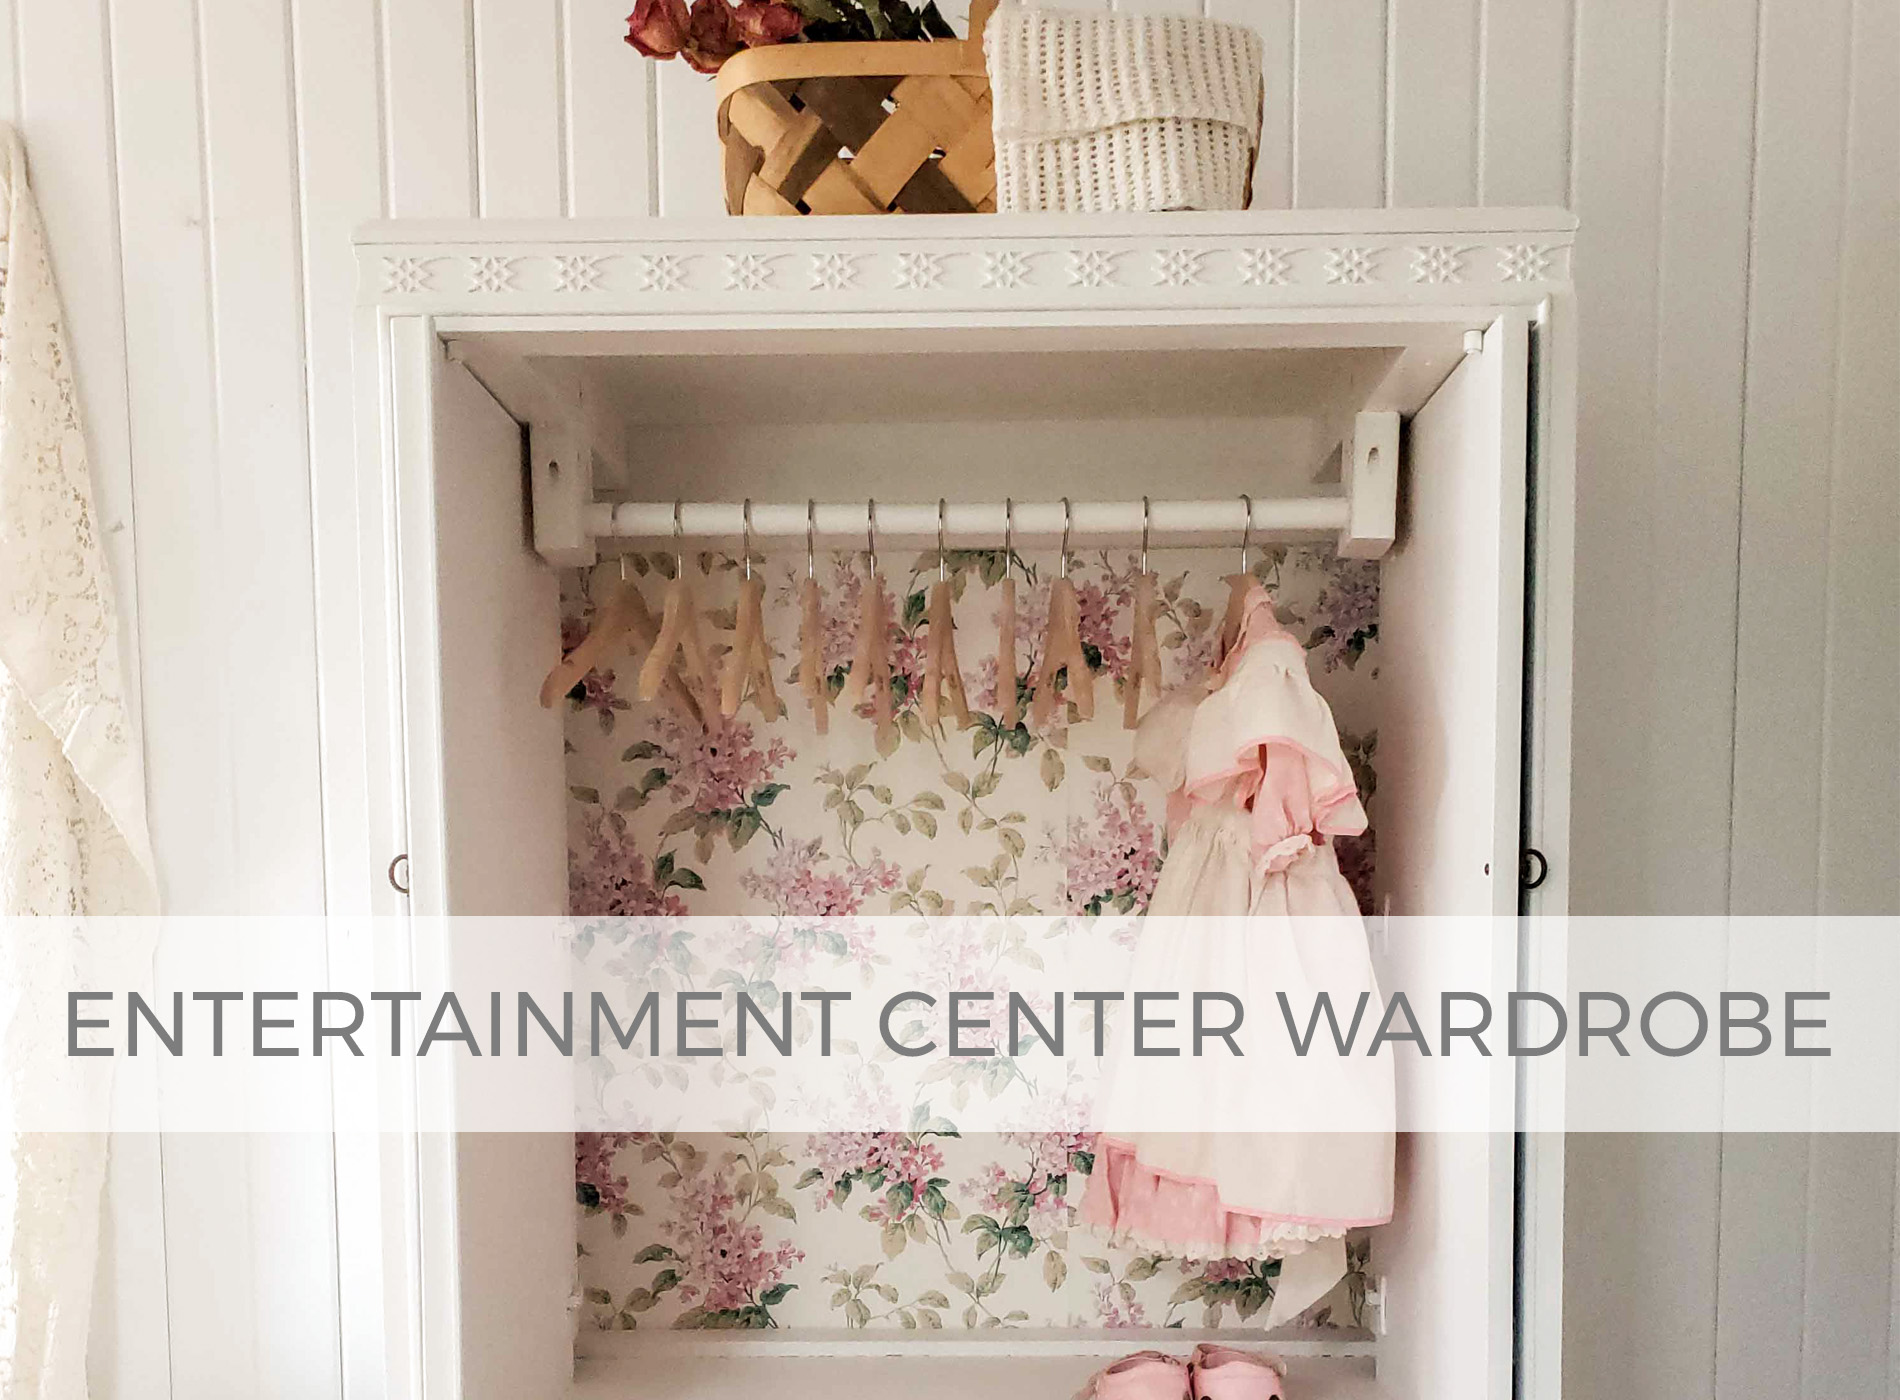 Entertainment Center Upcycled into Wardrobe by Larissa of Prodigal Pieces | prodigalpieces.com